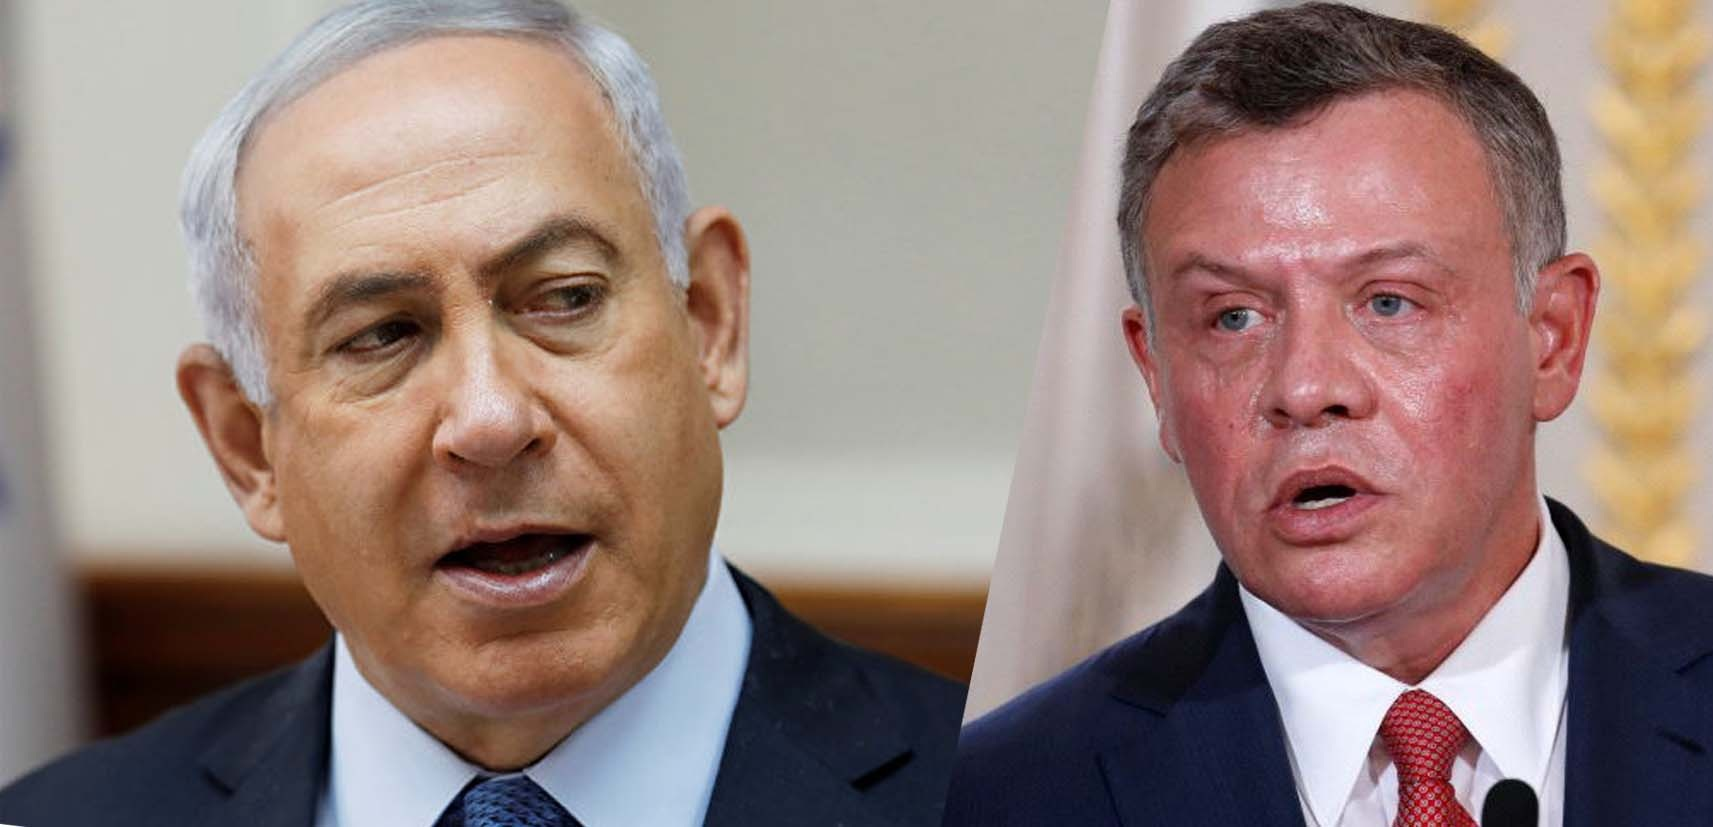 Discussion between Israeli Prime Minister Netanyahu and Jordanian King Abdullah